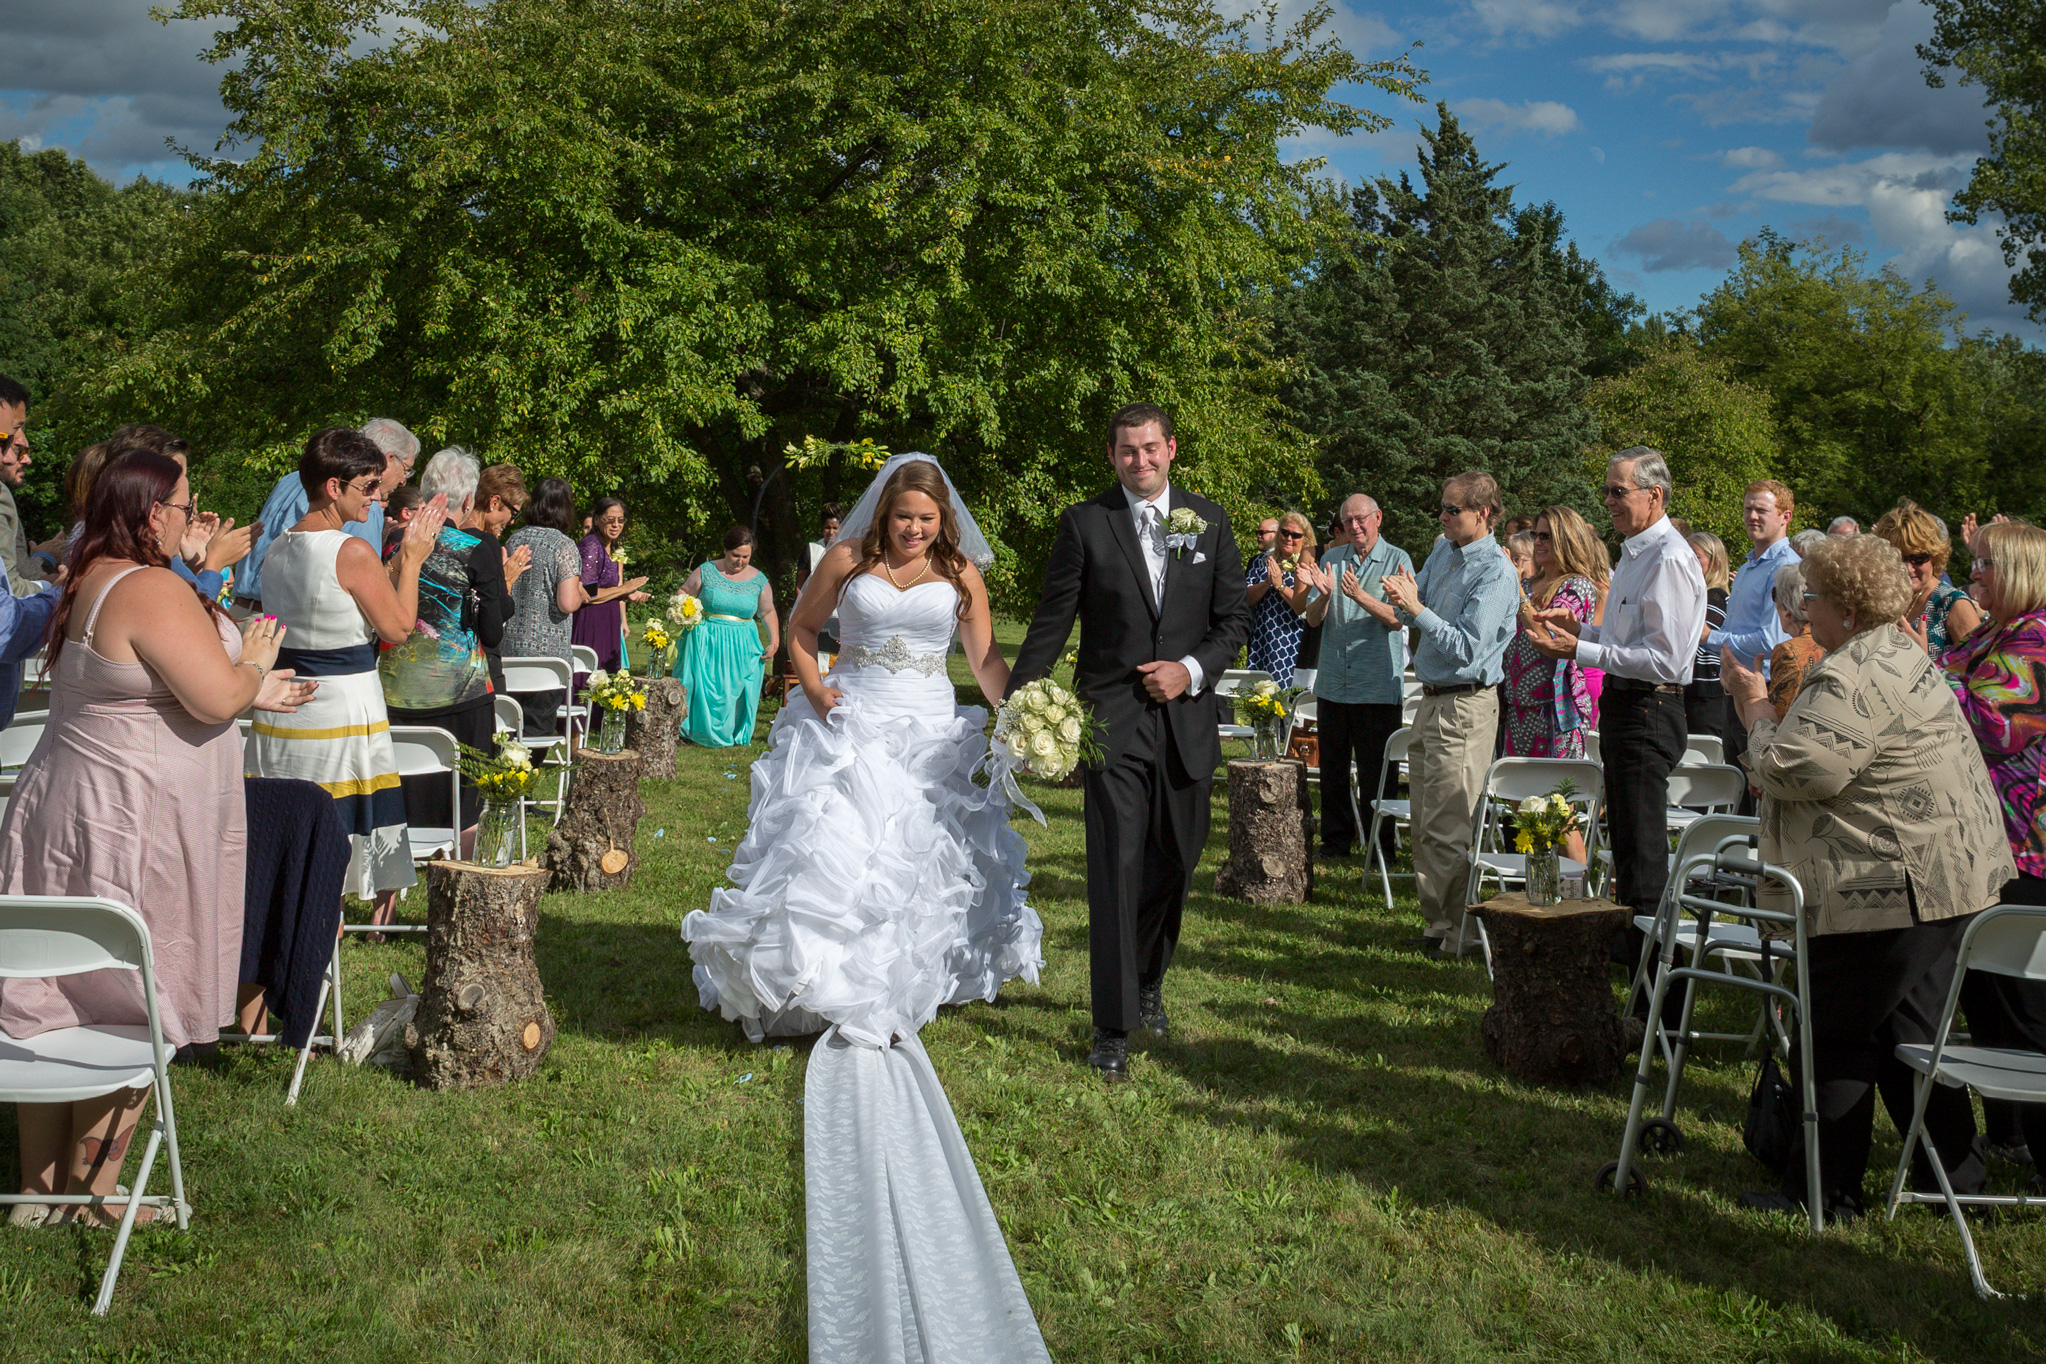 Annie_Matthew_barrington_wedding_outdoor_5.jpg